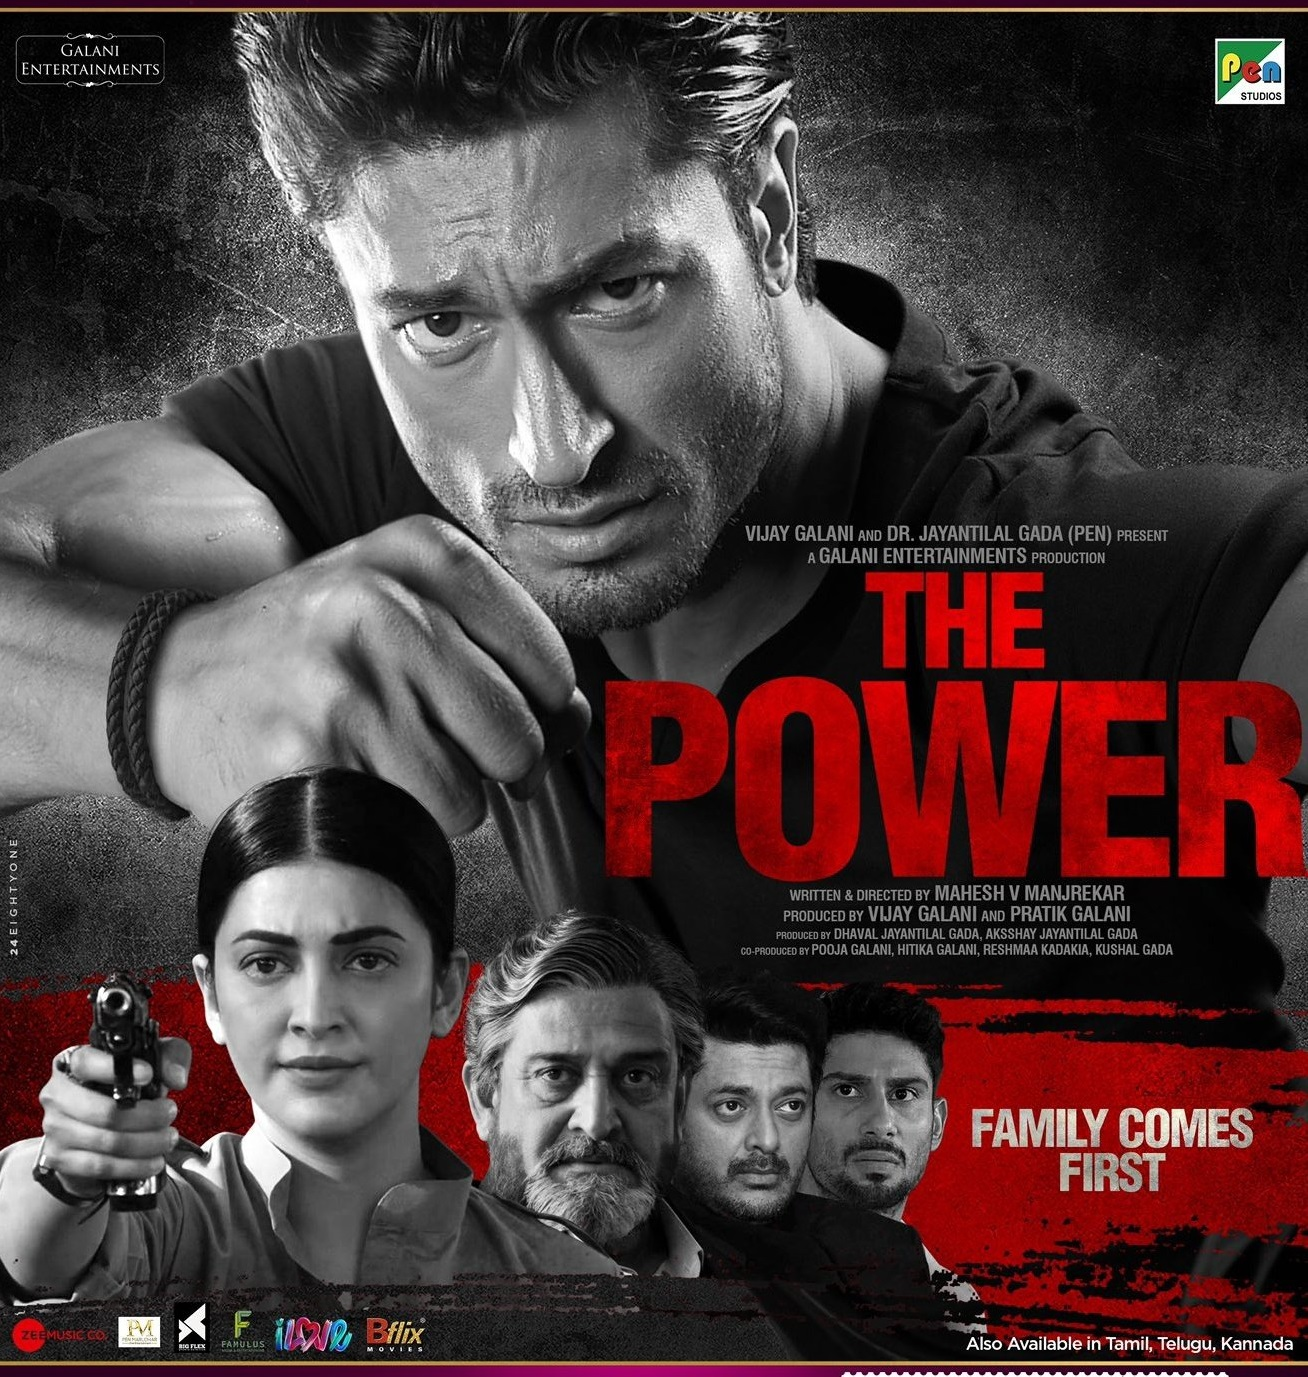 The Power (2021) Hindi WEB-DL 1080p | 720p | 480p x264 AAC ESub